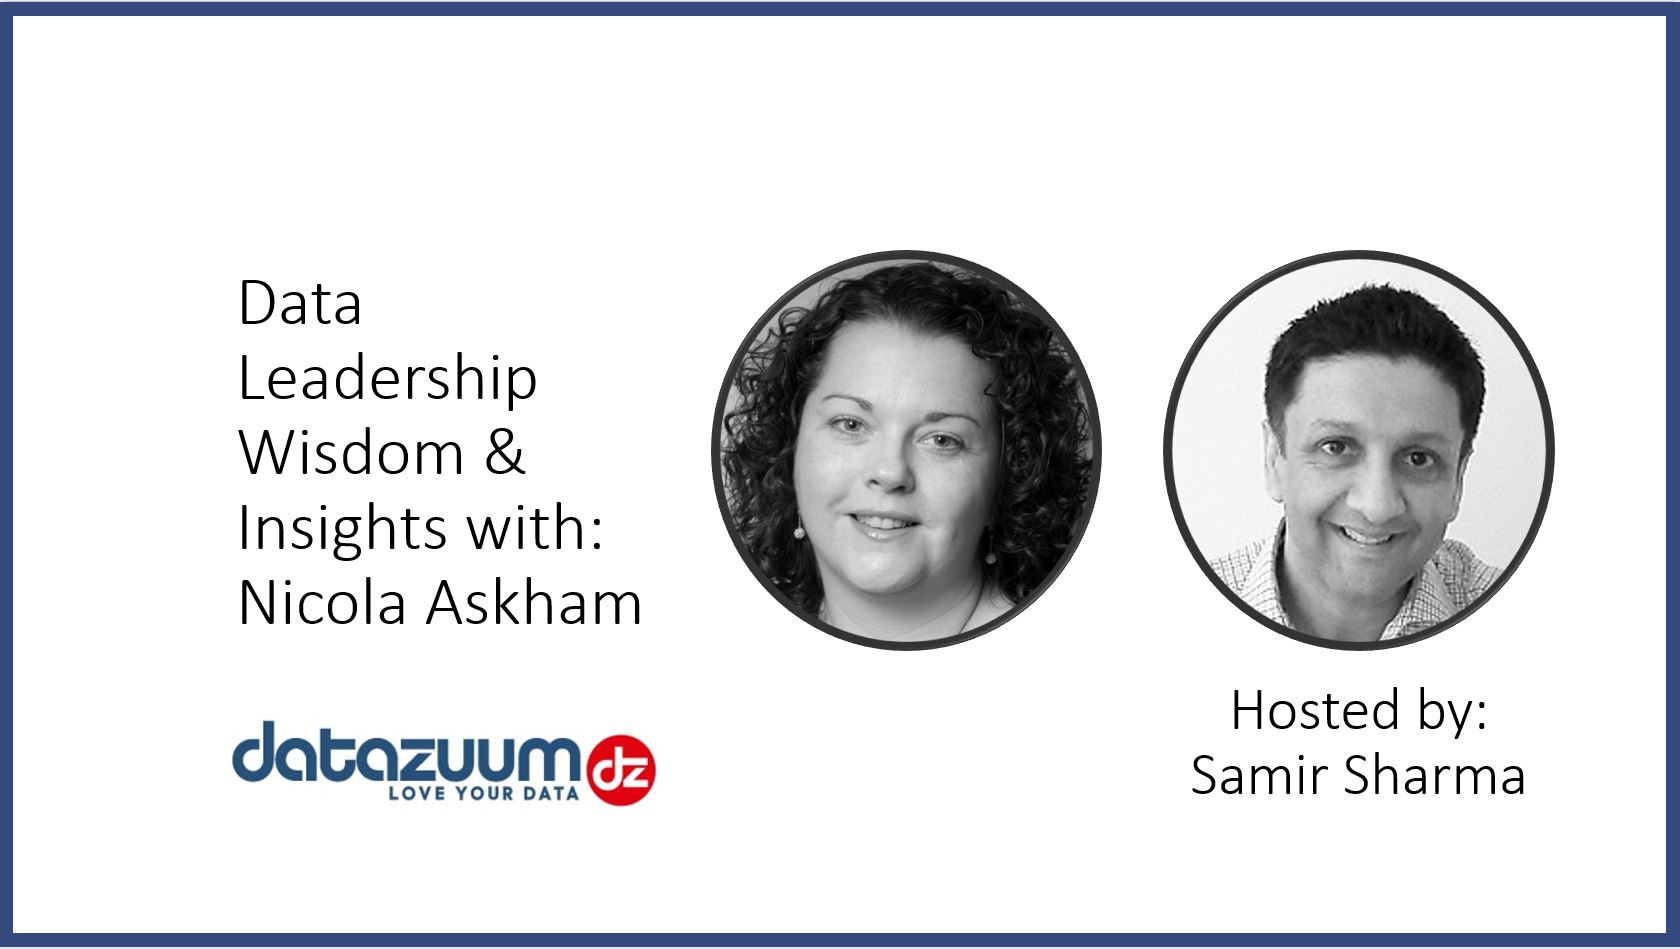 Webcast: Data Leadership, Wisdom & Insights With Nicola Askham